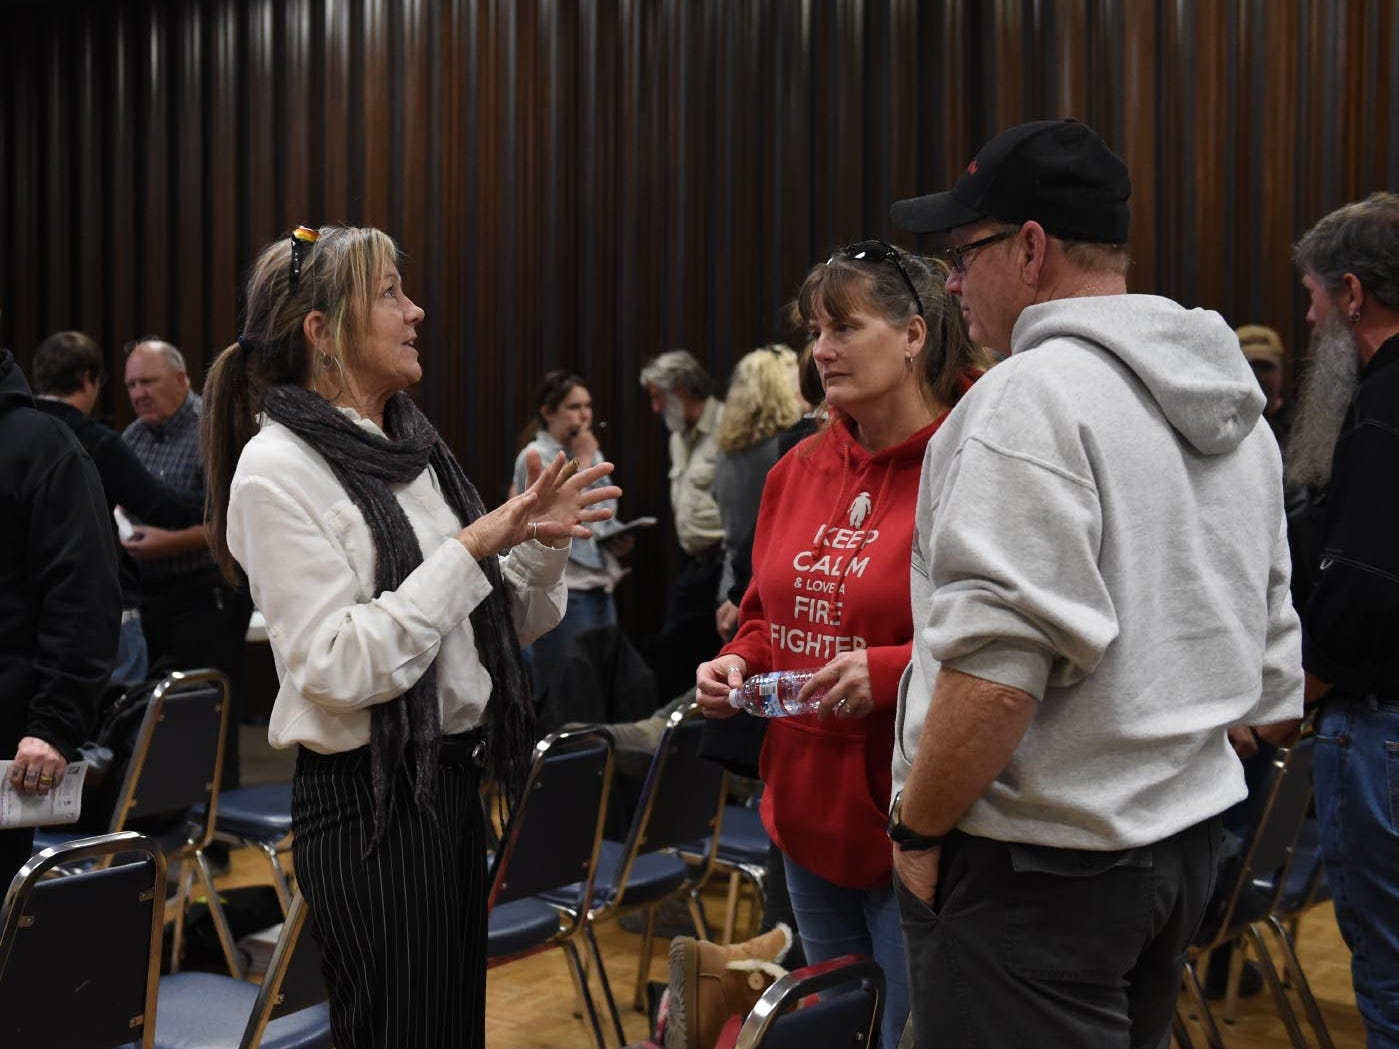 Images from the Burning Man public meeting at the Pershing County Community Center in Lovelock. It was the second round of public comments and questions on proposed changes to the Burning Man event on Tuesday evening April 9, 2019. The Bureau of Land Management hosted the event.